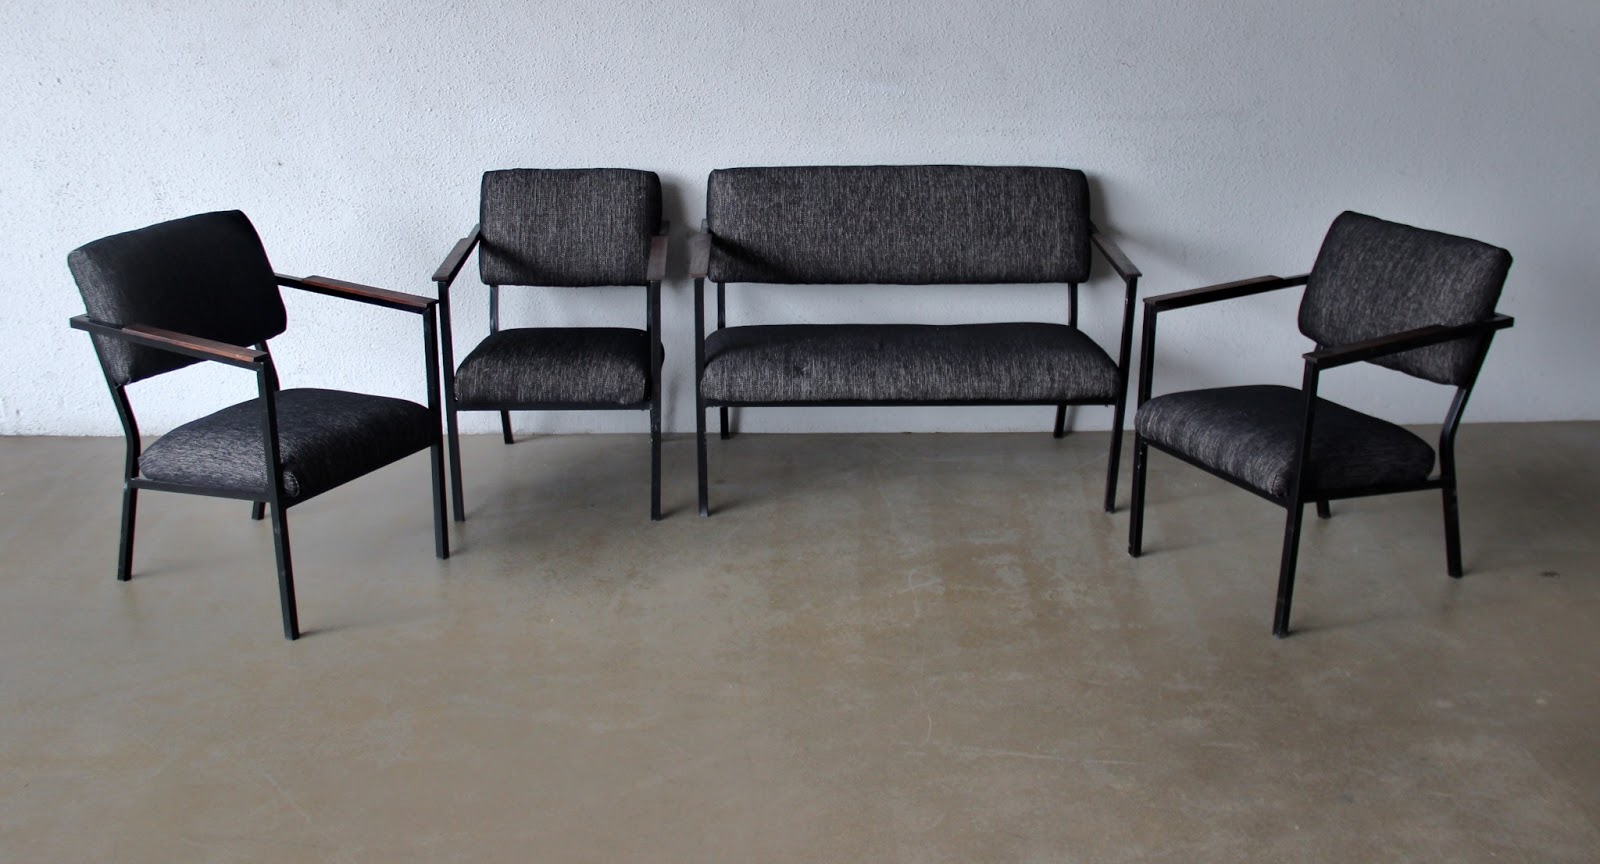 steel sofa set online chennai american furniture with chaise in hematite gray second charm some vintage midcentury latest